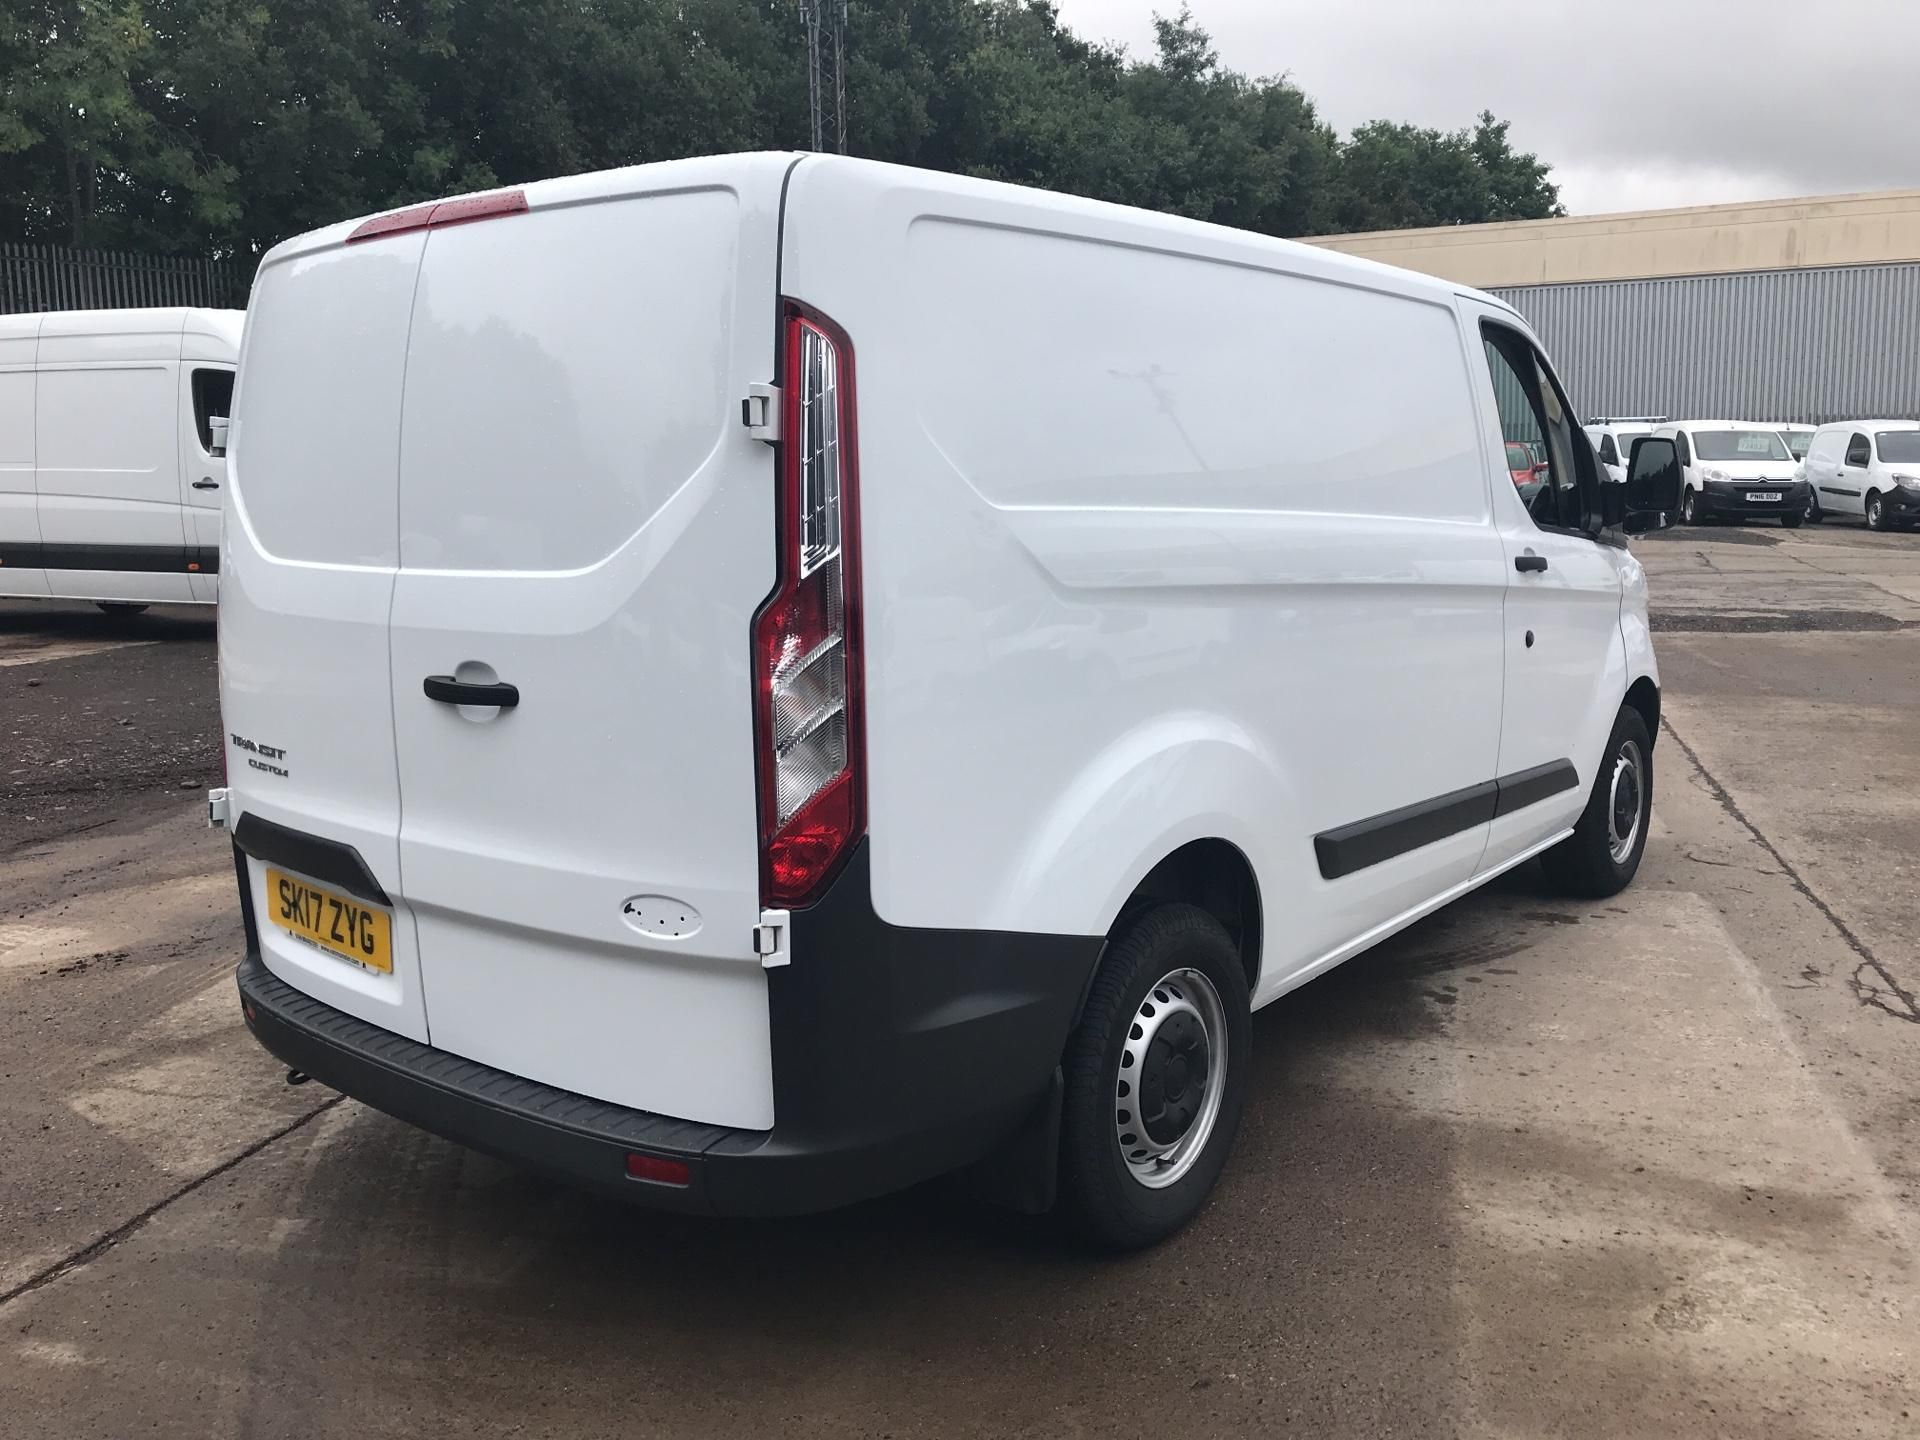 2017 Ford Transit Custom 270 L1 DIESEL FWD 2.2 TDCI 105PS LOW ROOF VAN EURO 5 (SK17ZYG) Thumbnail 3